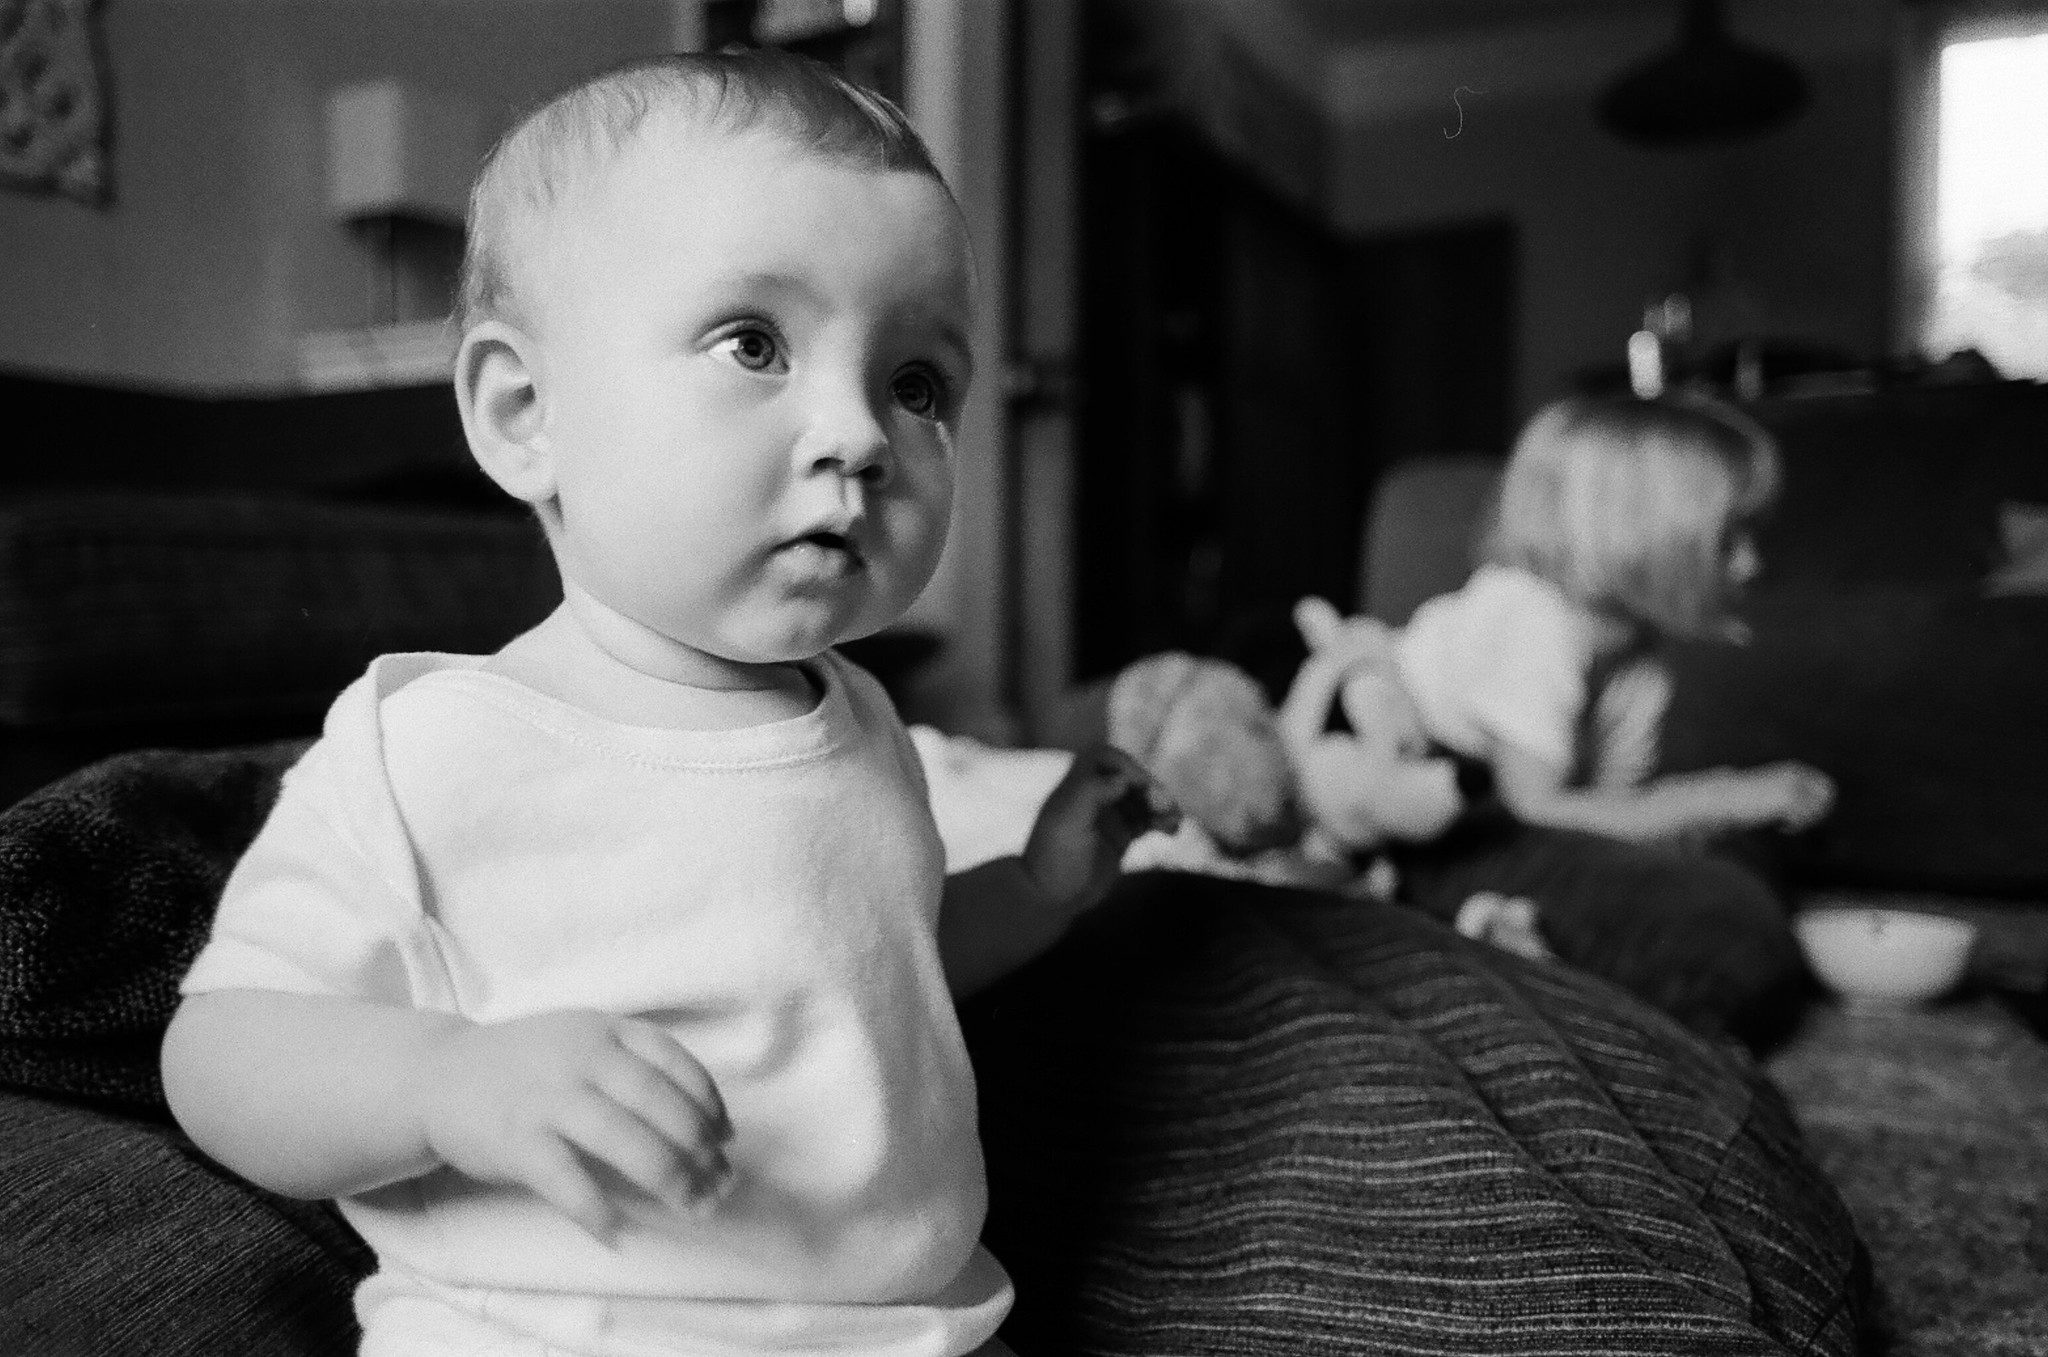 Taken with Ilford HP5+ a 28mm ZM Biogon lens I borrowed off Zeiss